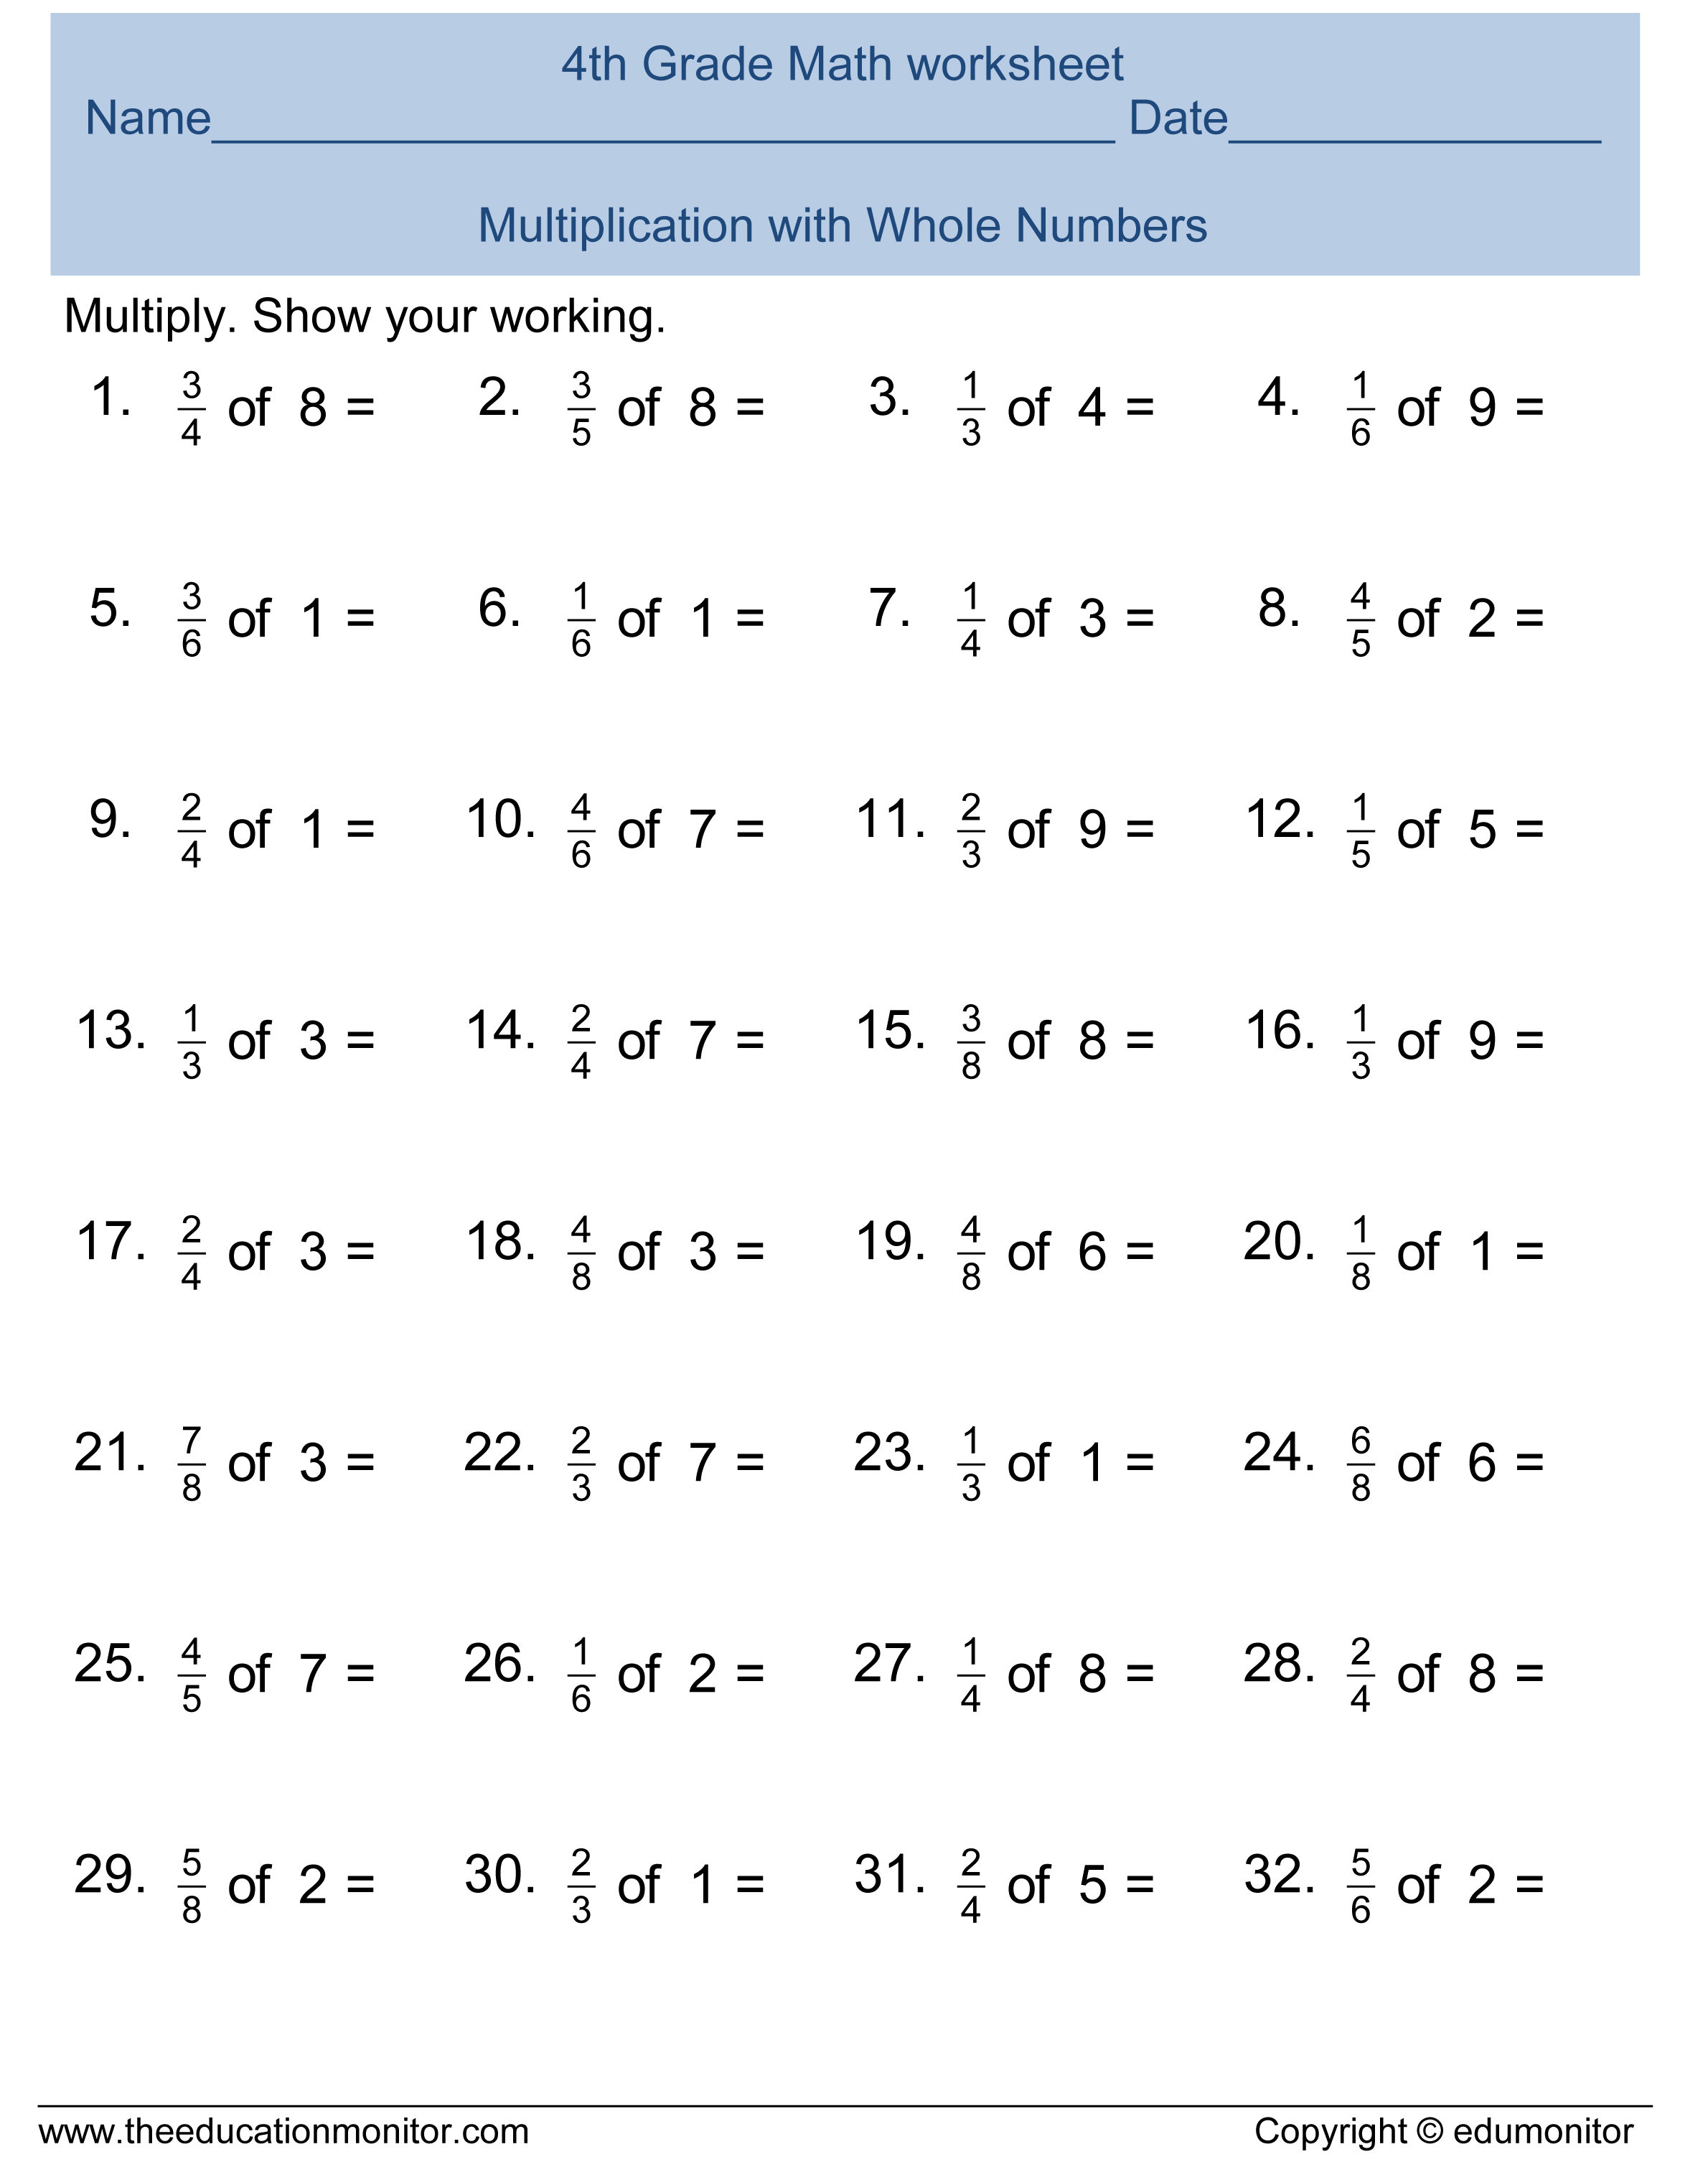 Printables Multiplication Worksheets 4th Grade math worksheets 4th grade subtraction 4 free printable k5 learning